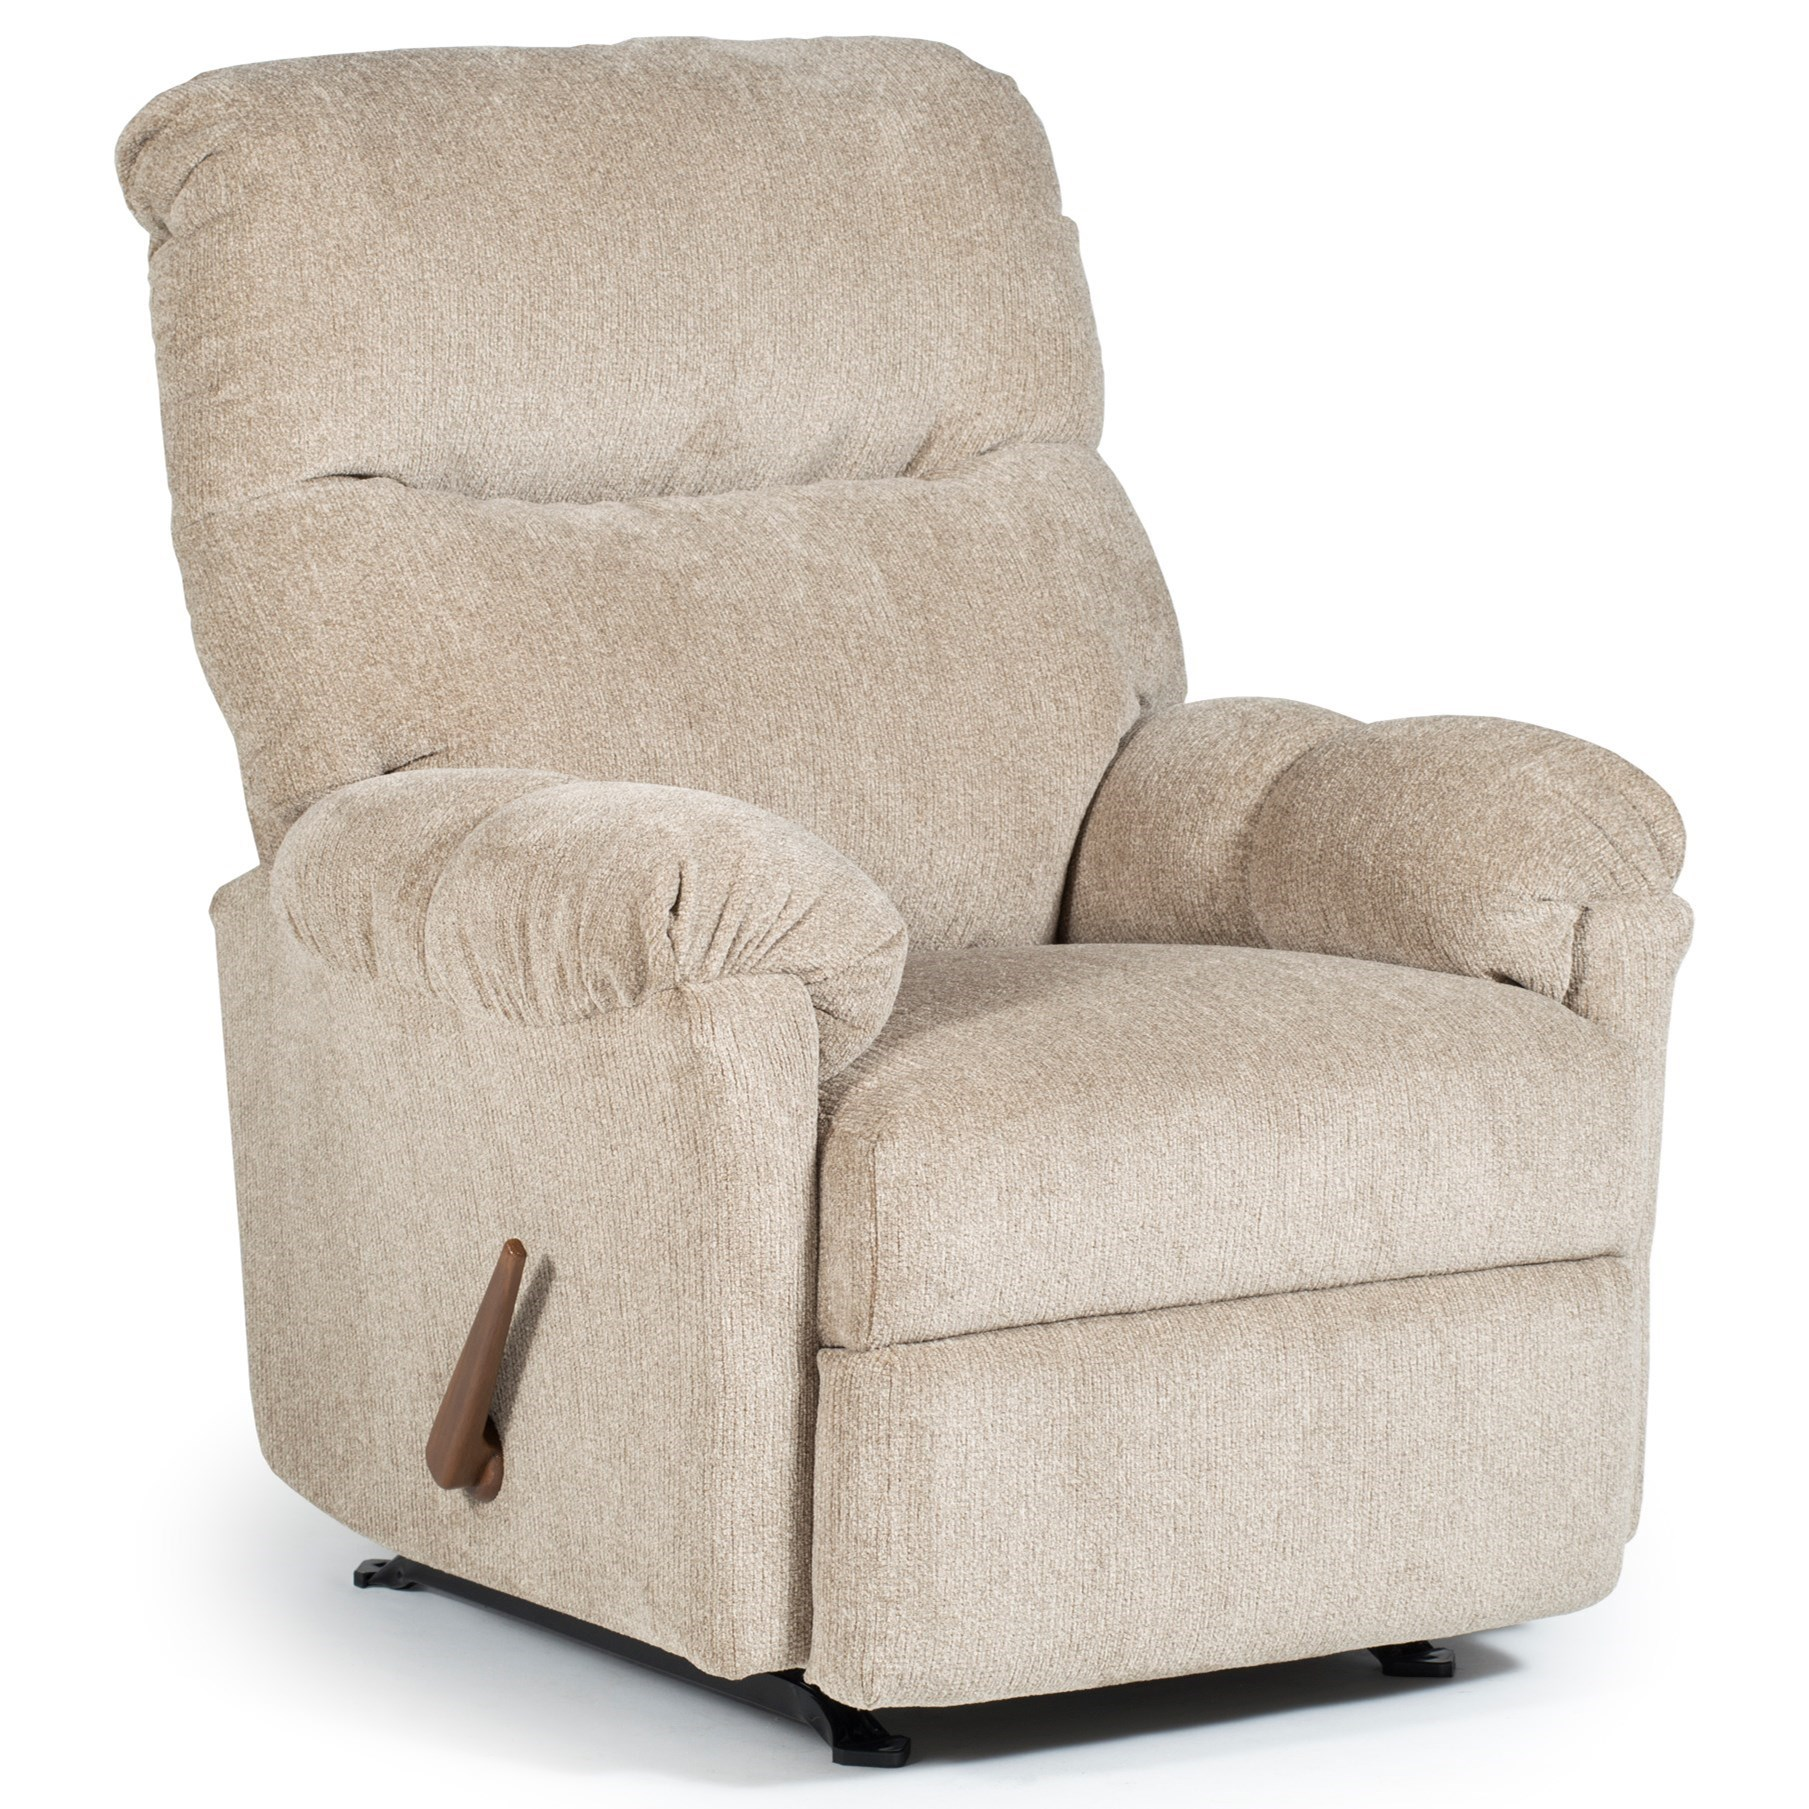 Rocking Swivel Chair Best Home Furnishings Recliners Medium 2nw69 Balmore